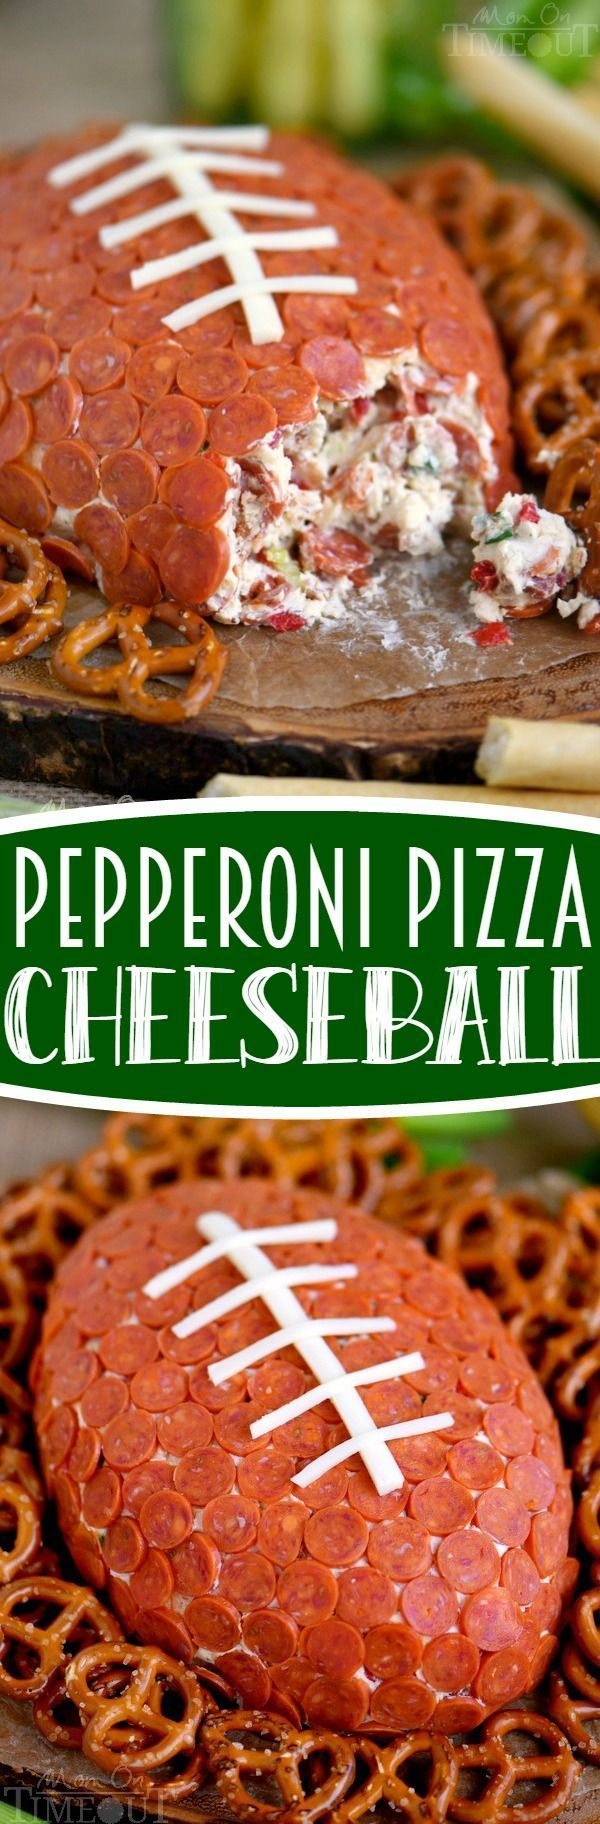 This Pepperoni Pizza Football Cheese Ball is my new favorite thing! Super easy to make and a total showstopper! Make this for your next game day celebration and watch the crowd go wild! // Mom On Timeout